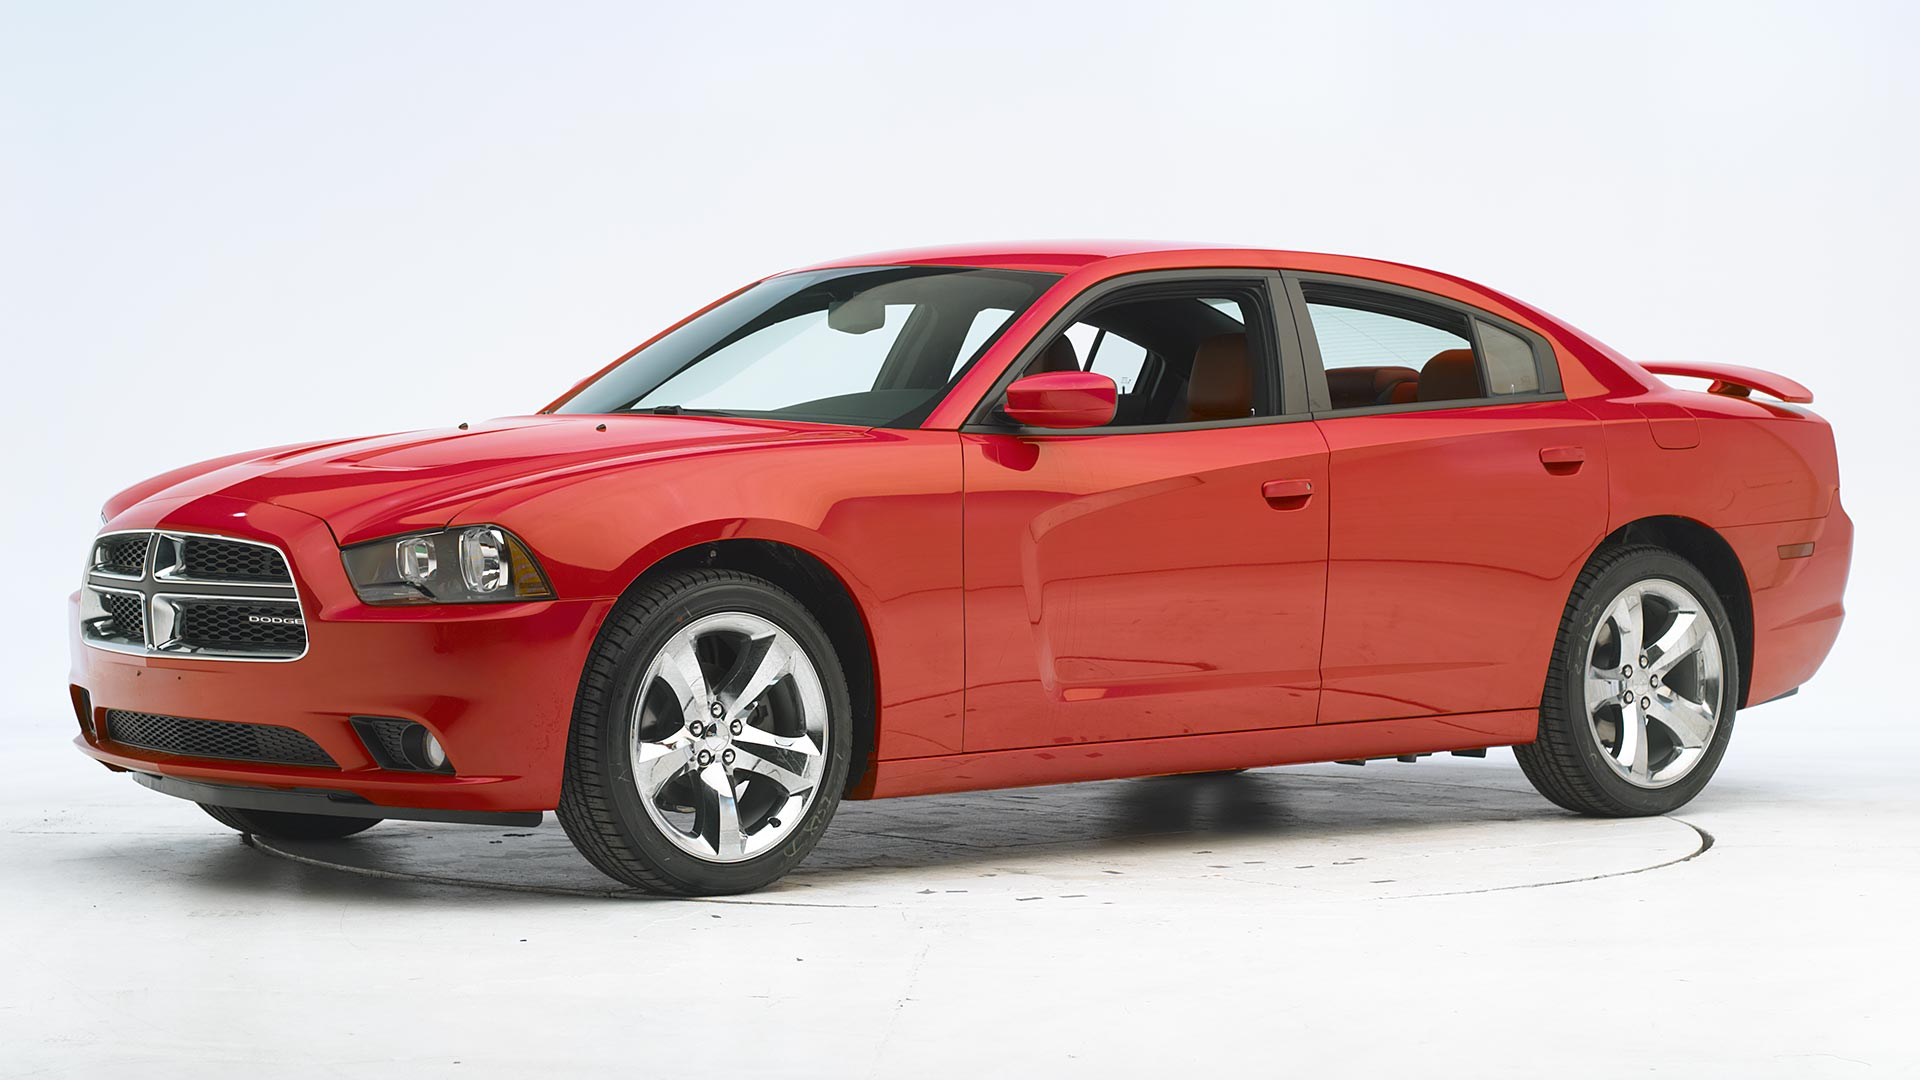 2013 Dodge Charger 4-door sedan